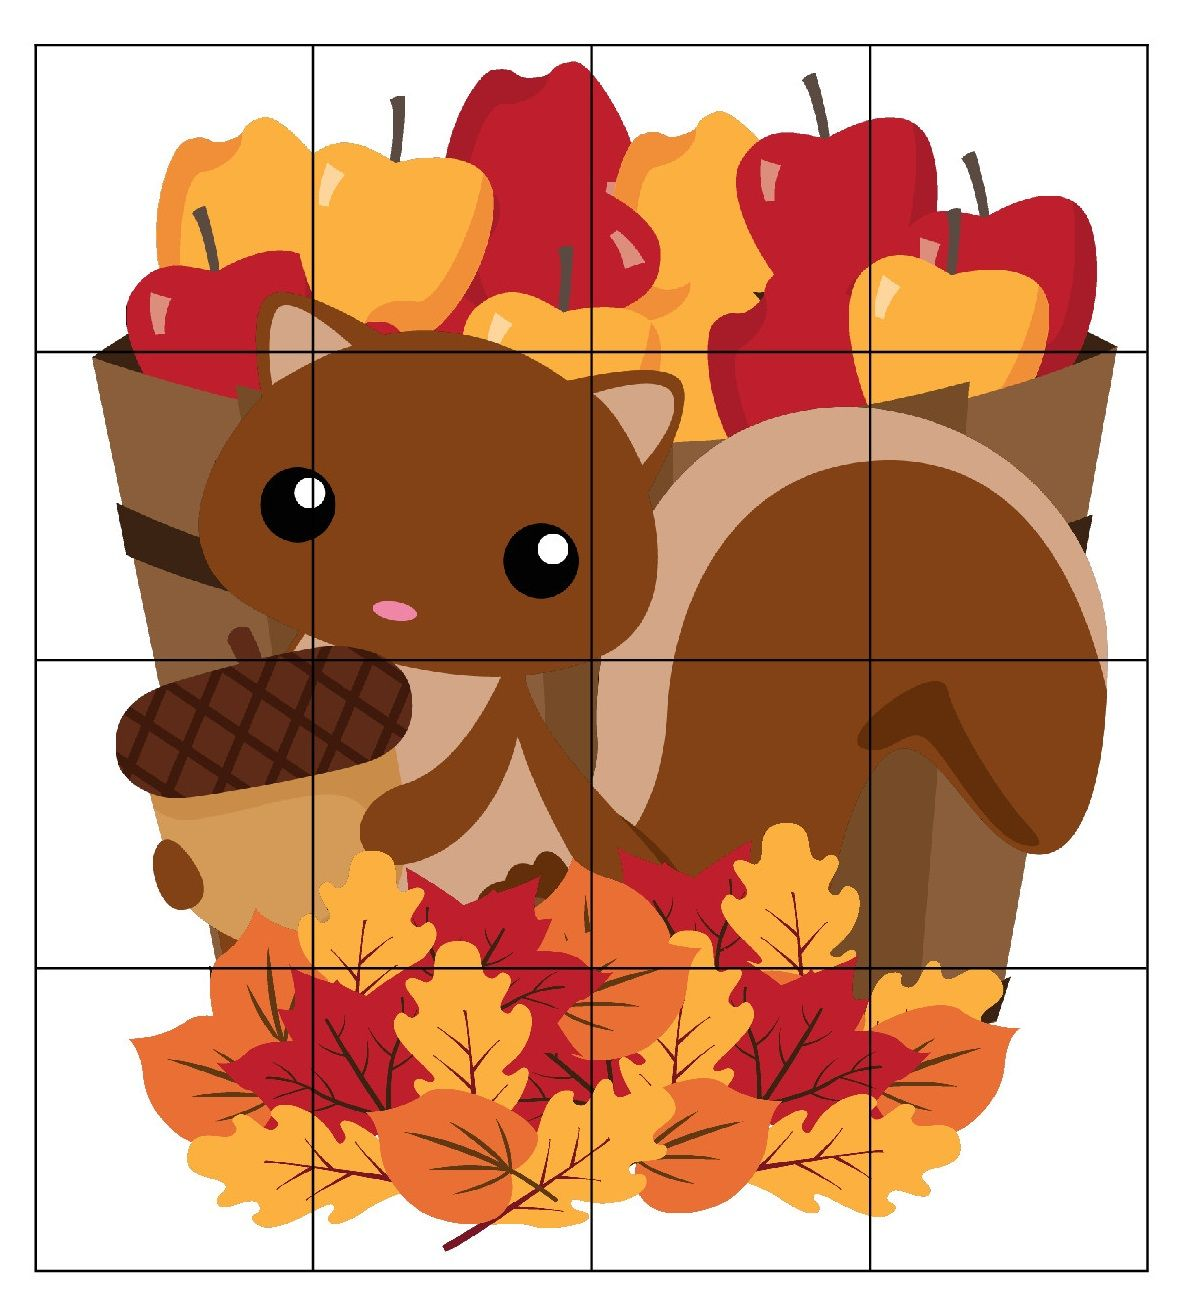 Print This Cute Squirrel Puzzle For Kids To Put Together